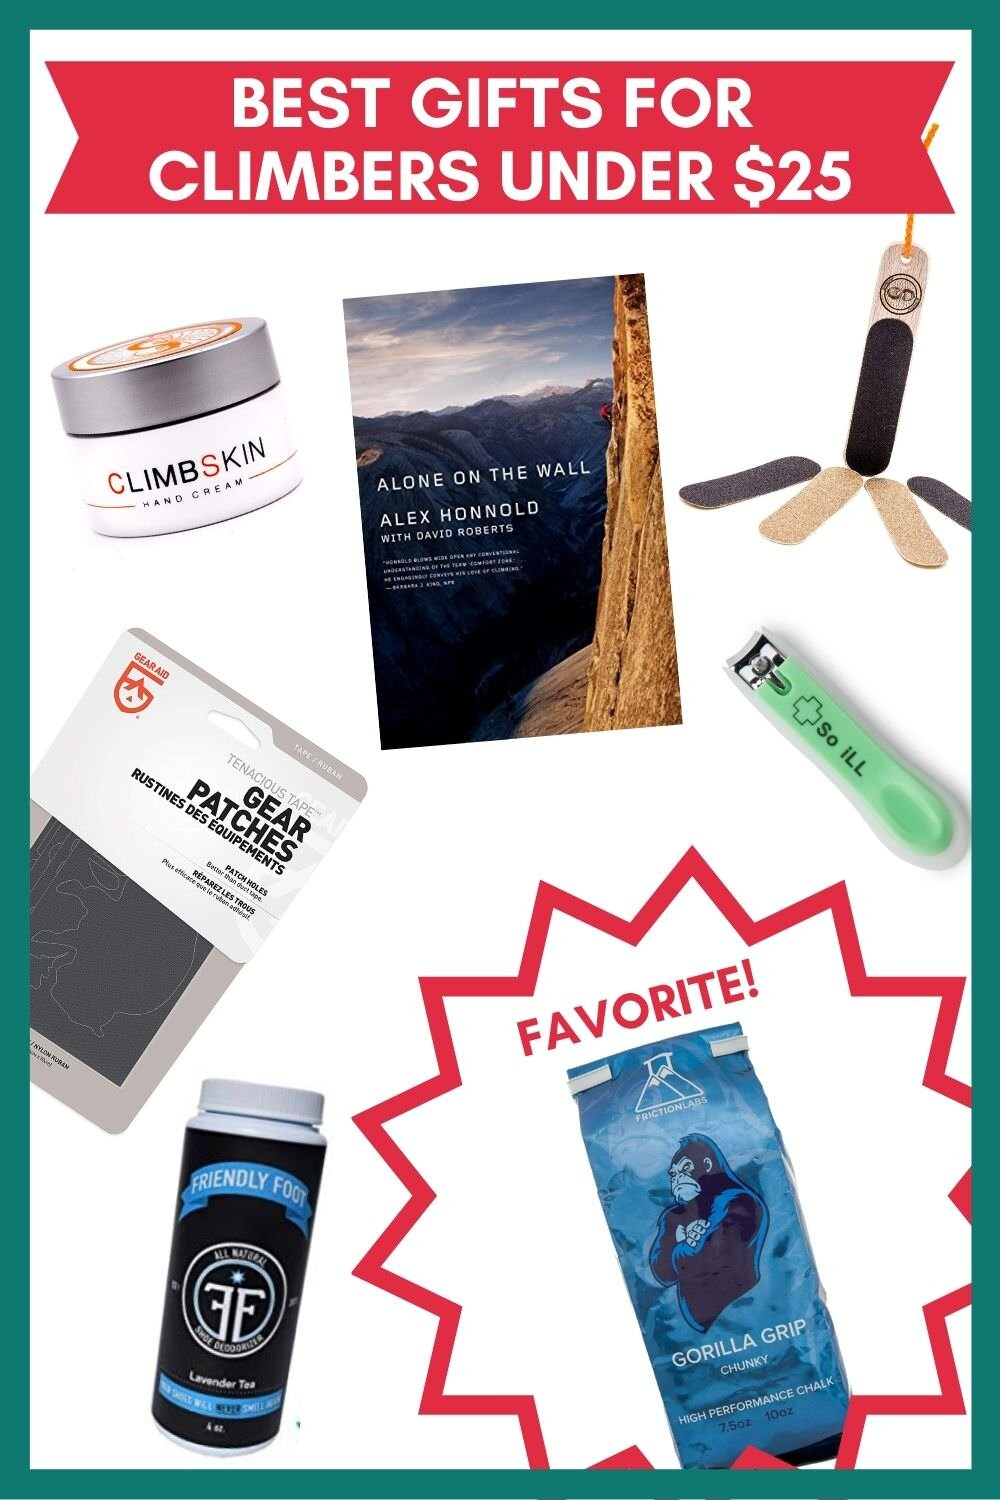 Great gift ideas for climbers under $25.